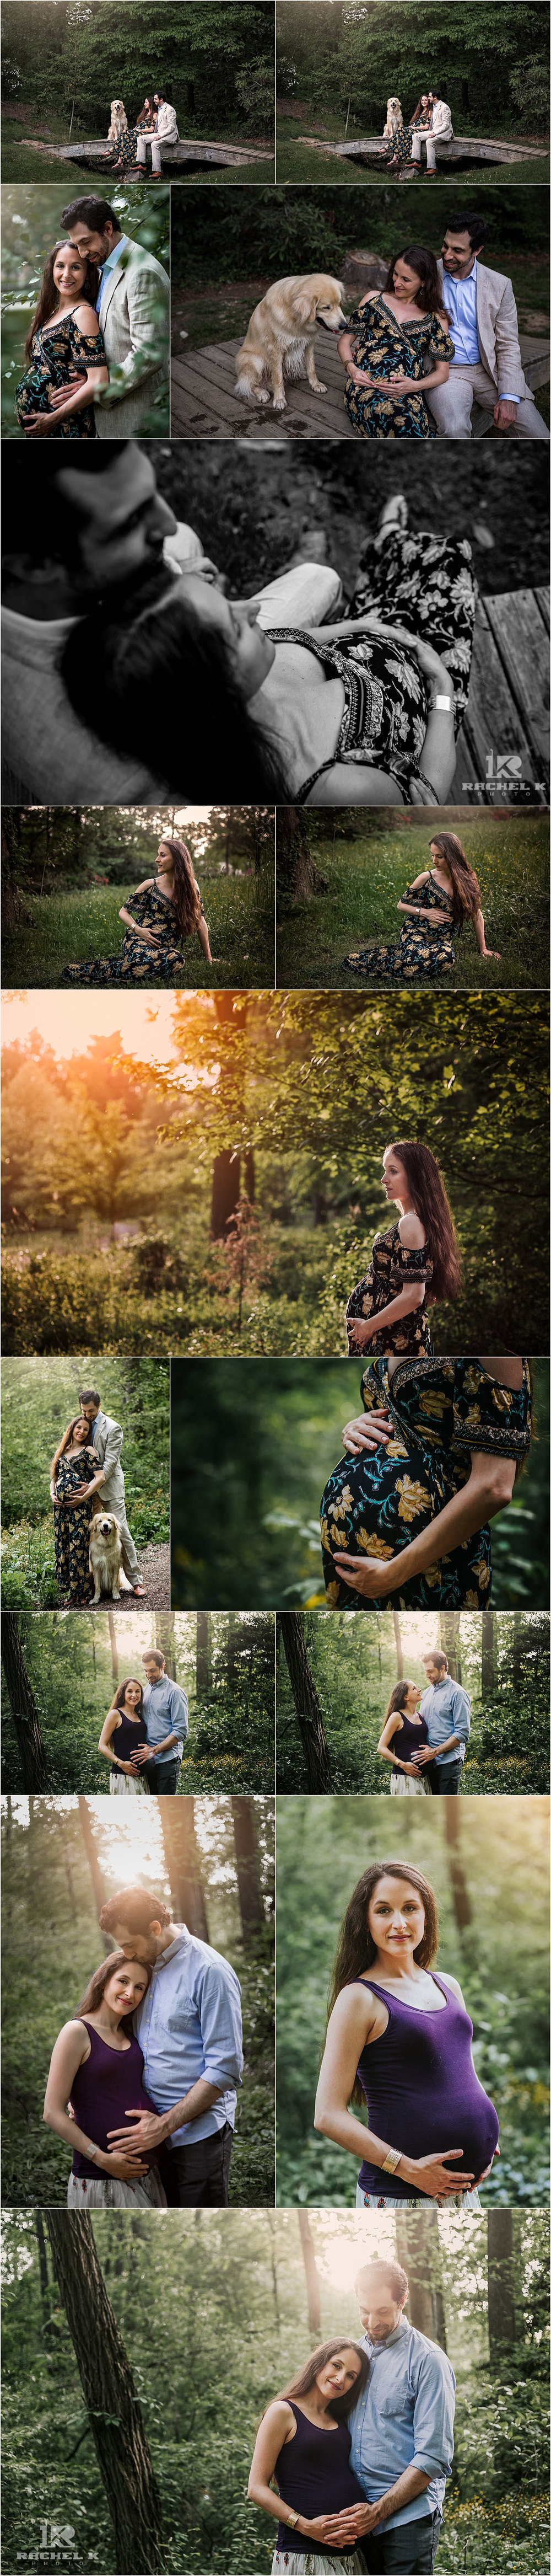 Green Springs Gardens Alexandria maternity session by Rachel K Photo